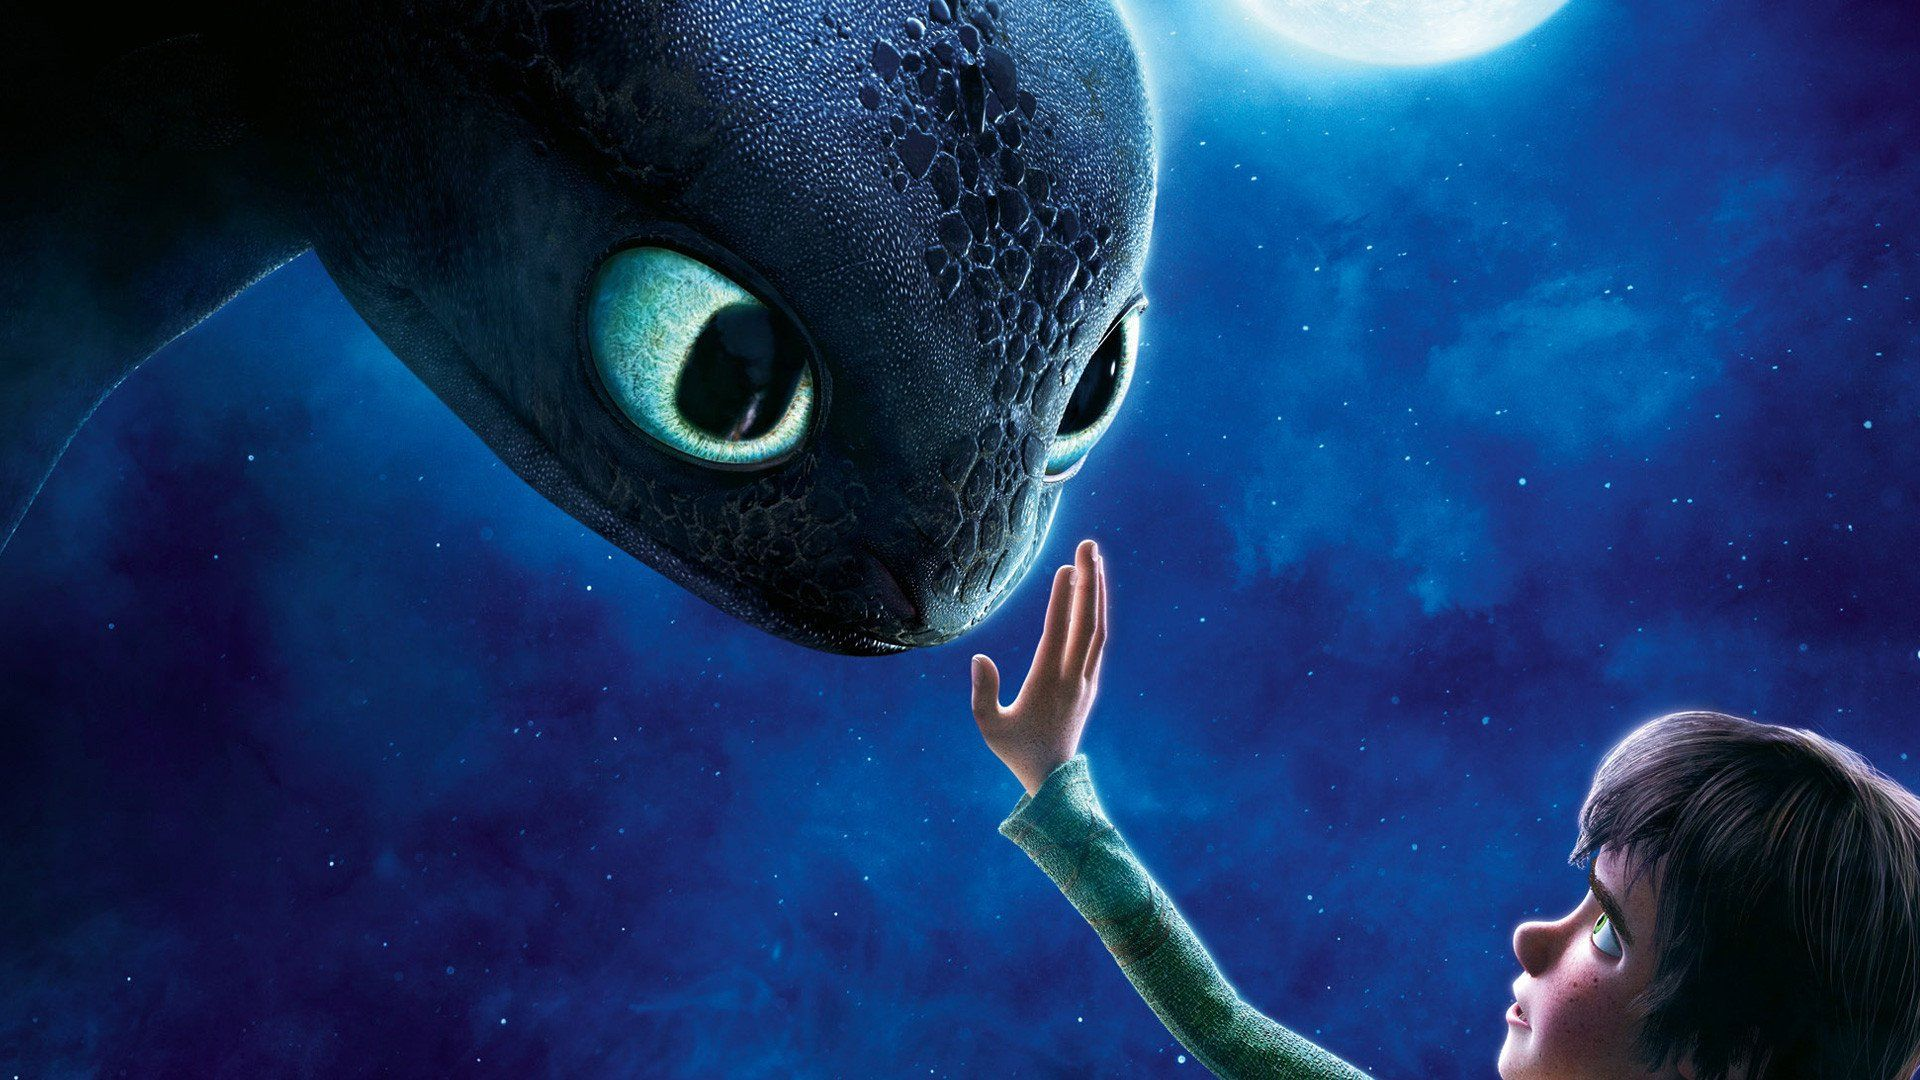 How to train your dragon 2010 english film free watch online how how to train your dragon 2010 english film free watch online how to train your dragon 2010 english film how to train your dragon 2010 english full ccuart Image collections